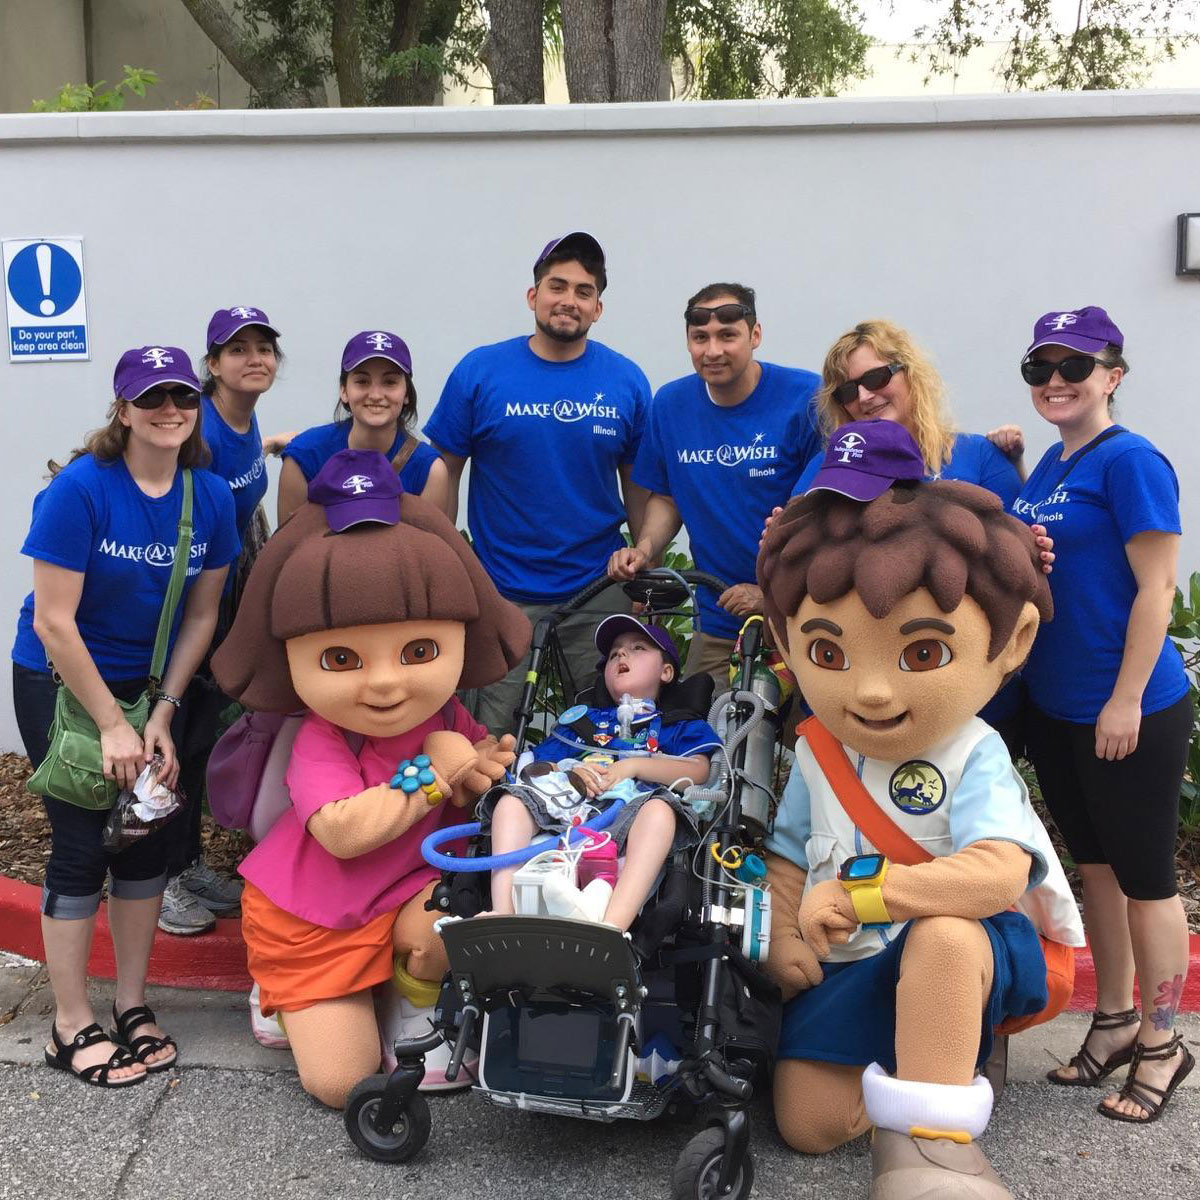 Paul s Make A Wish Trip to Disney   Independence Plus Paul recently traveled to Disney World thanks to the Make A Wish Foundation